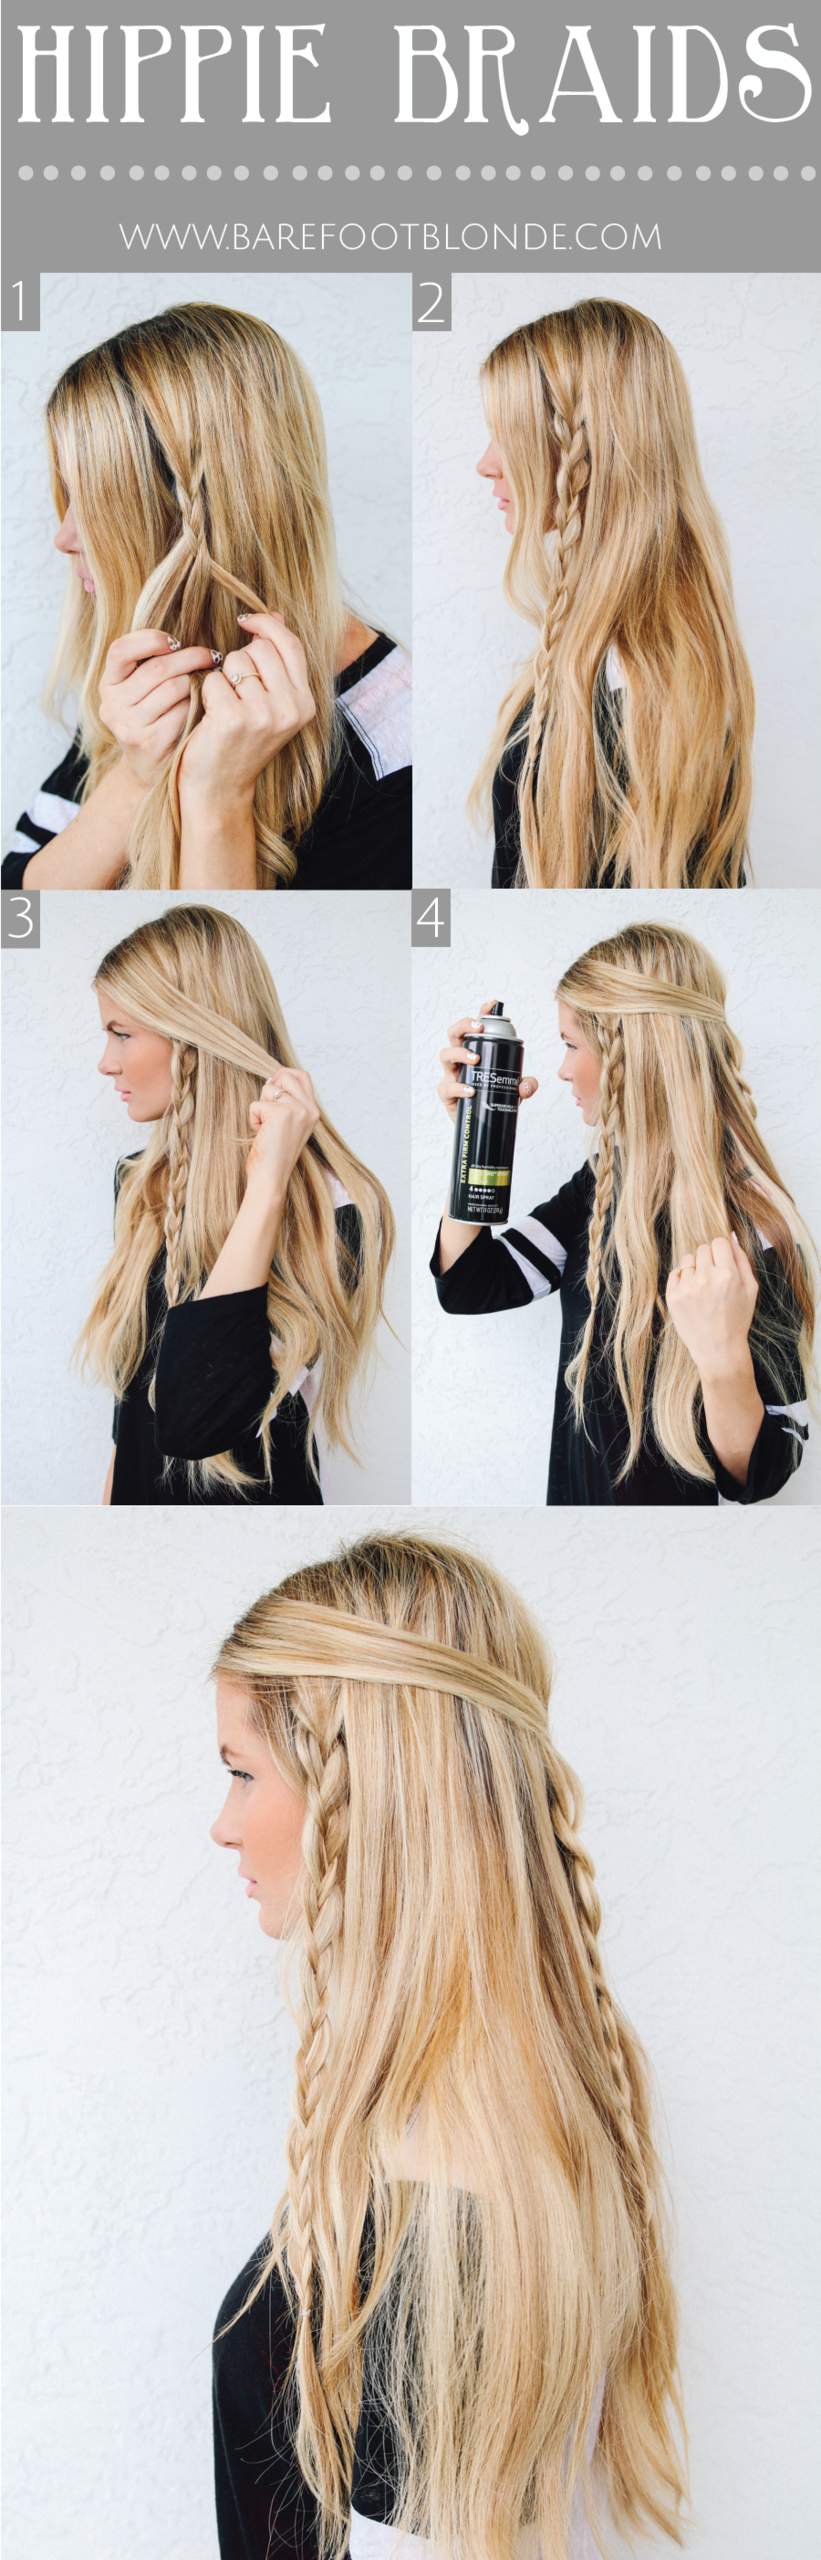 Hippie braids looks pinterest costumes halloween costumes and